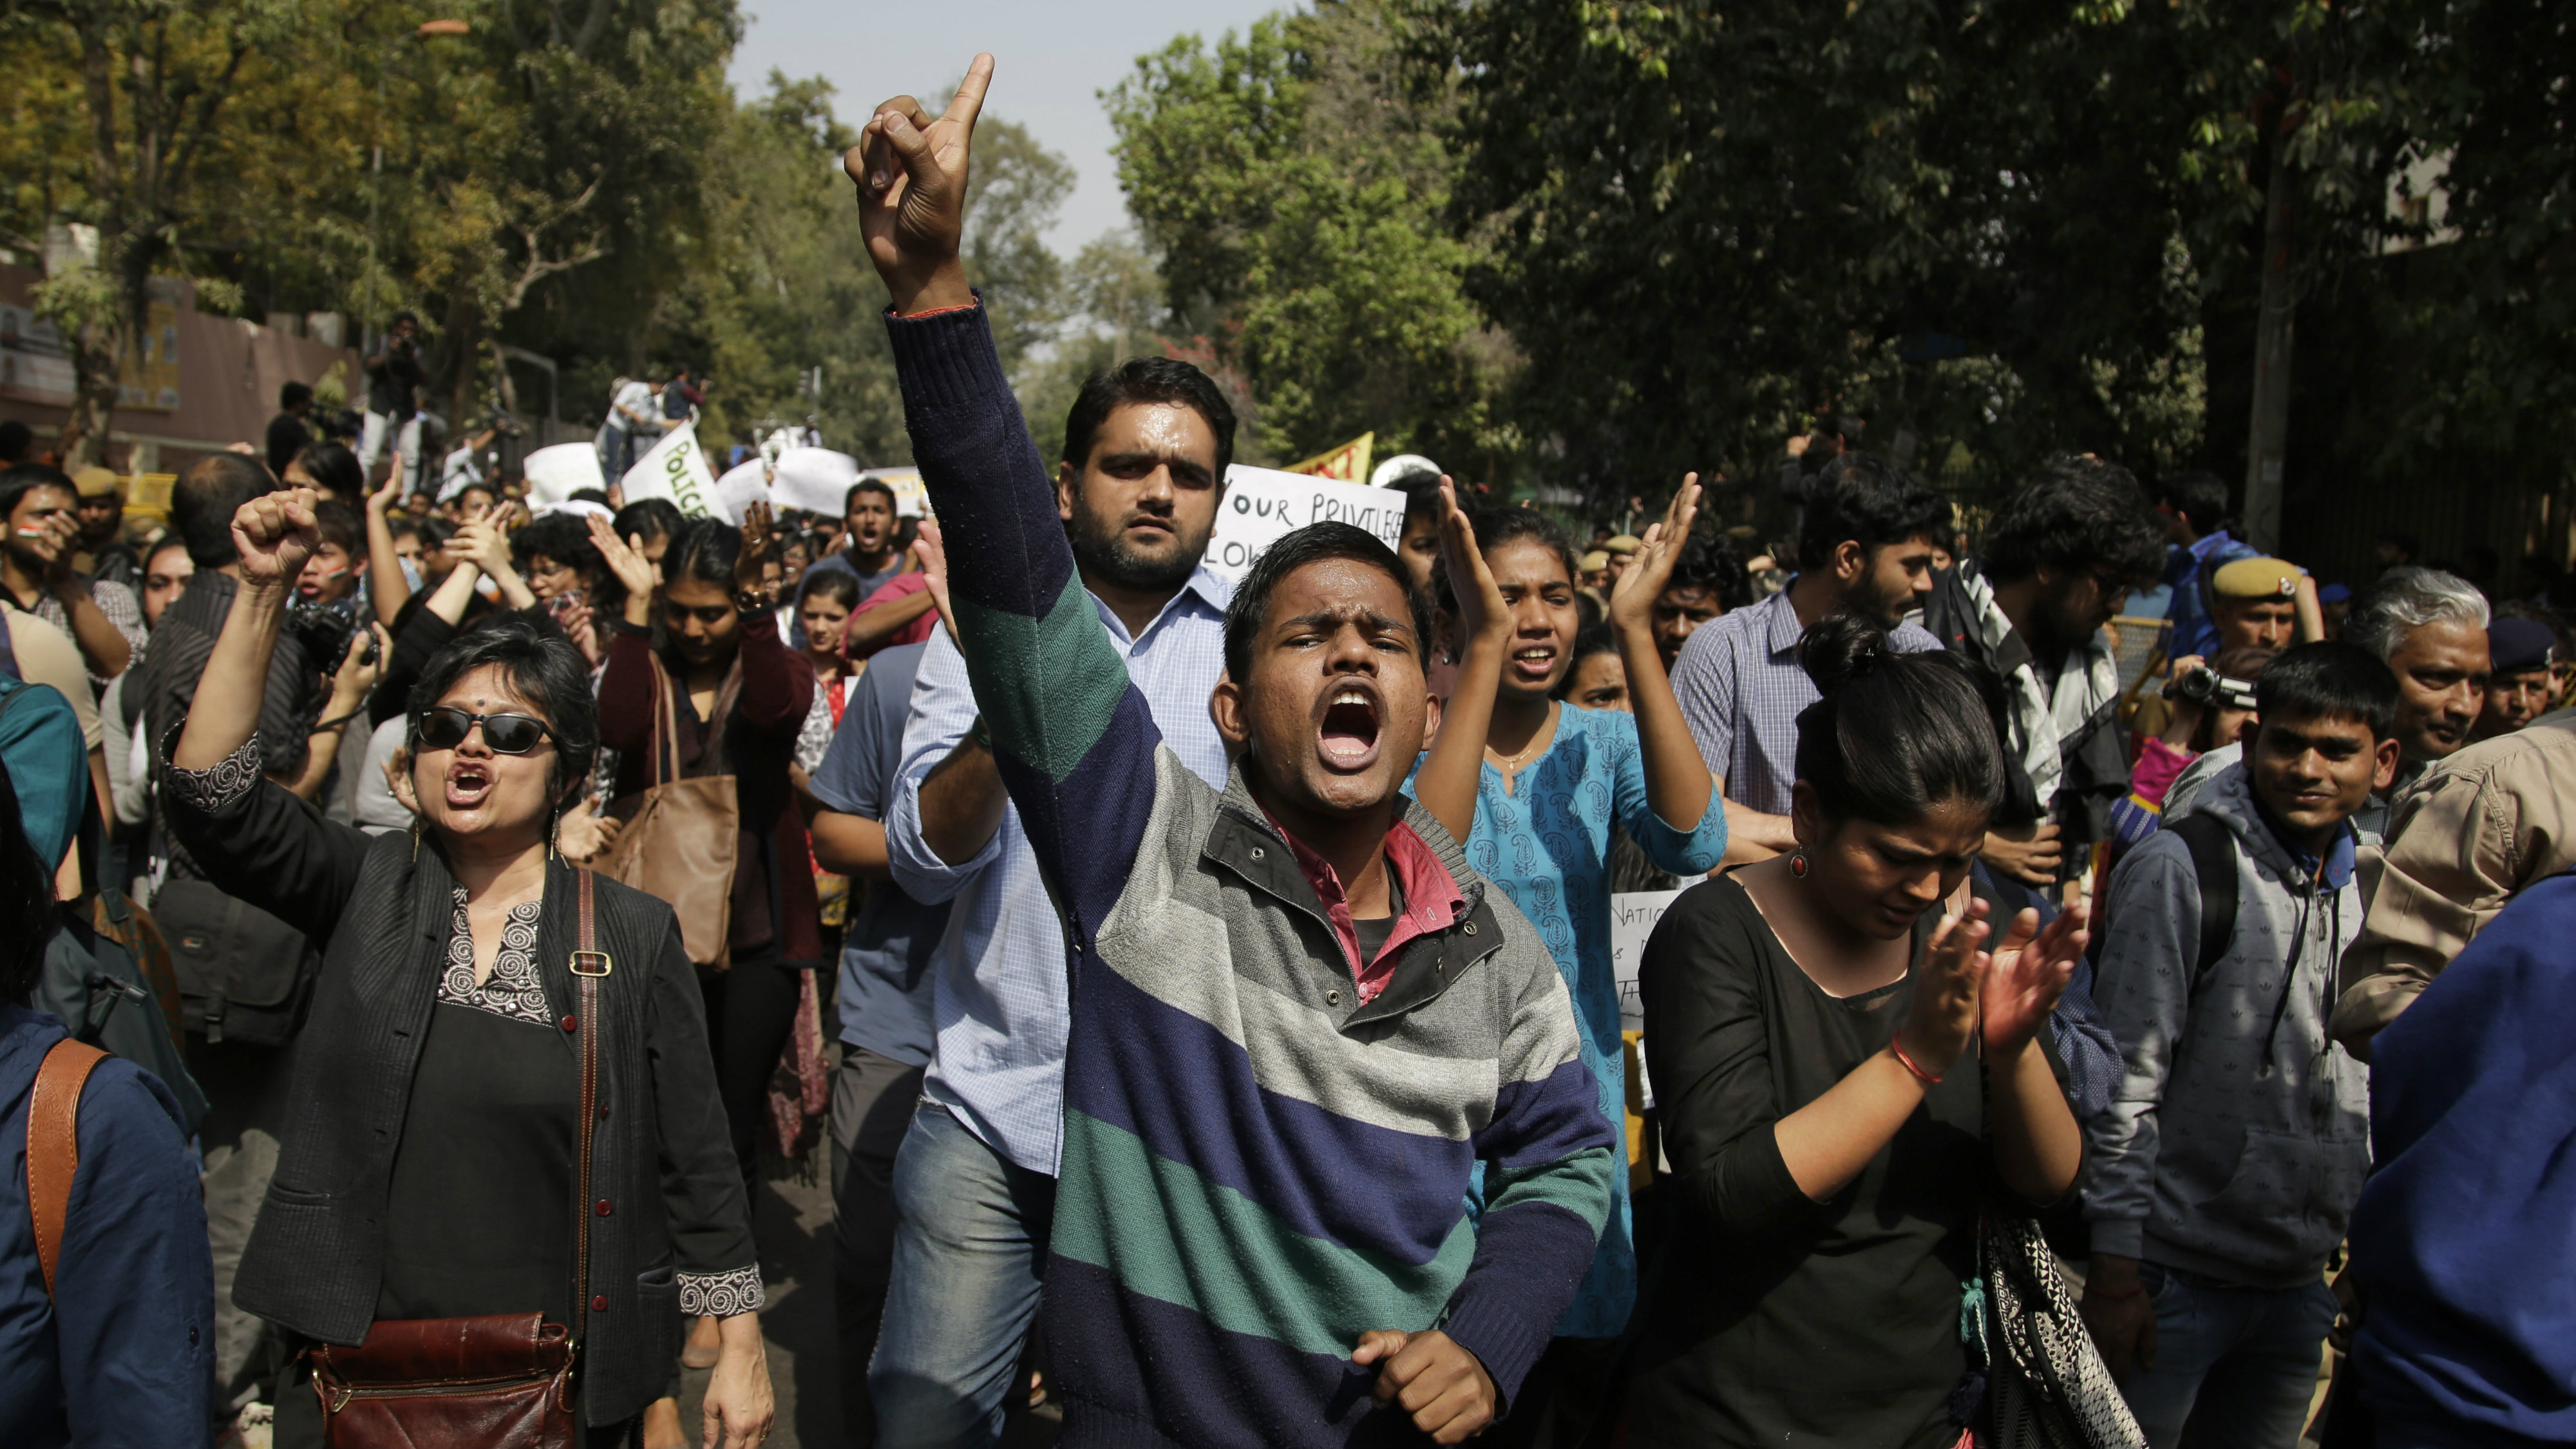 Indian college students participate in a protest rally against the Akhil Bharatiya Vidyarthi Parishad (ABVP), the students wing of the ruling Bharatiya Janata Party, after the group was accused of attacking students and faculty members at Delhi university in New Delhi, India, Tuesday, Feb. 28, 2017.